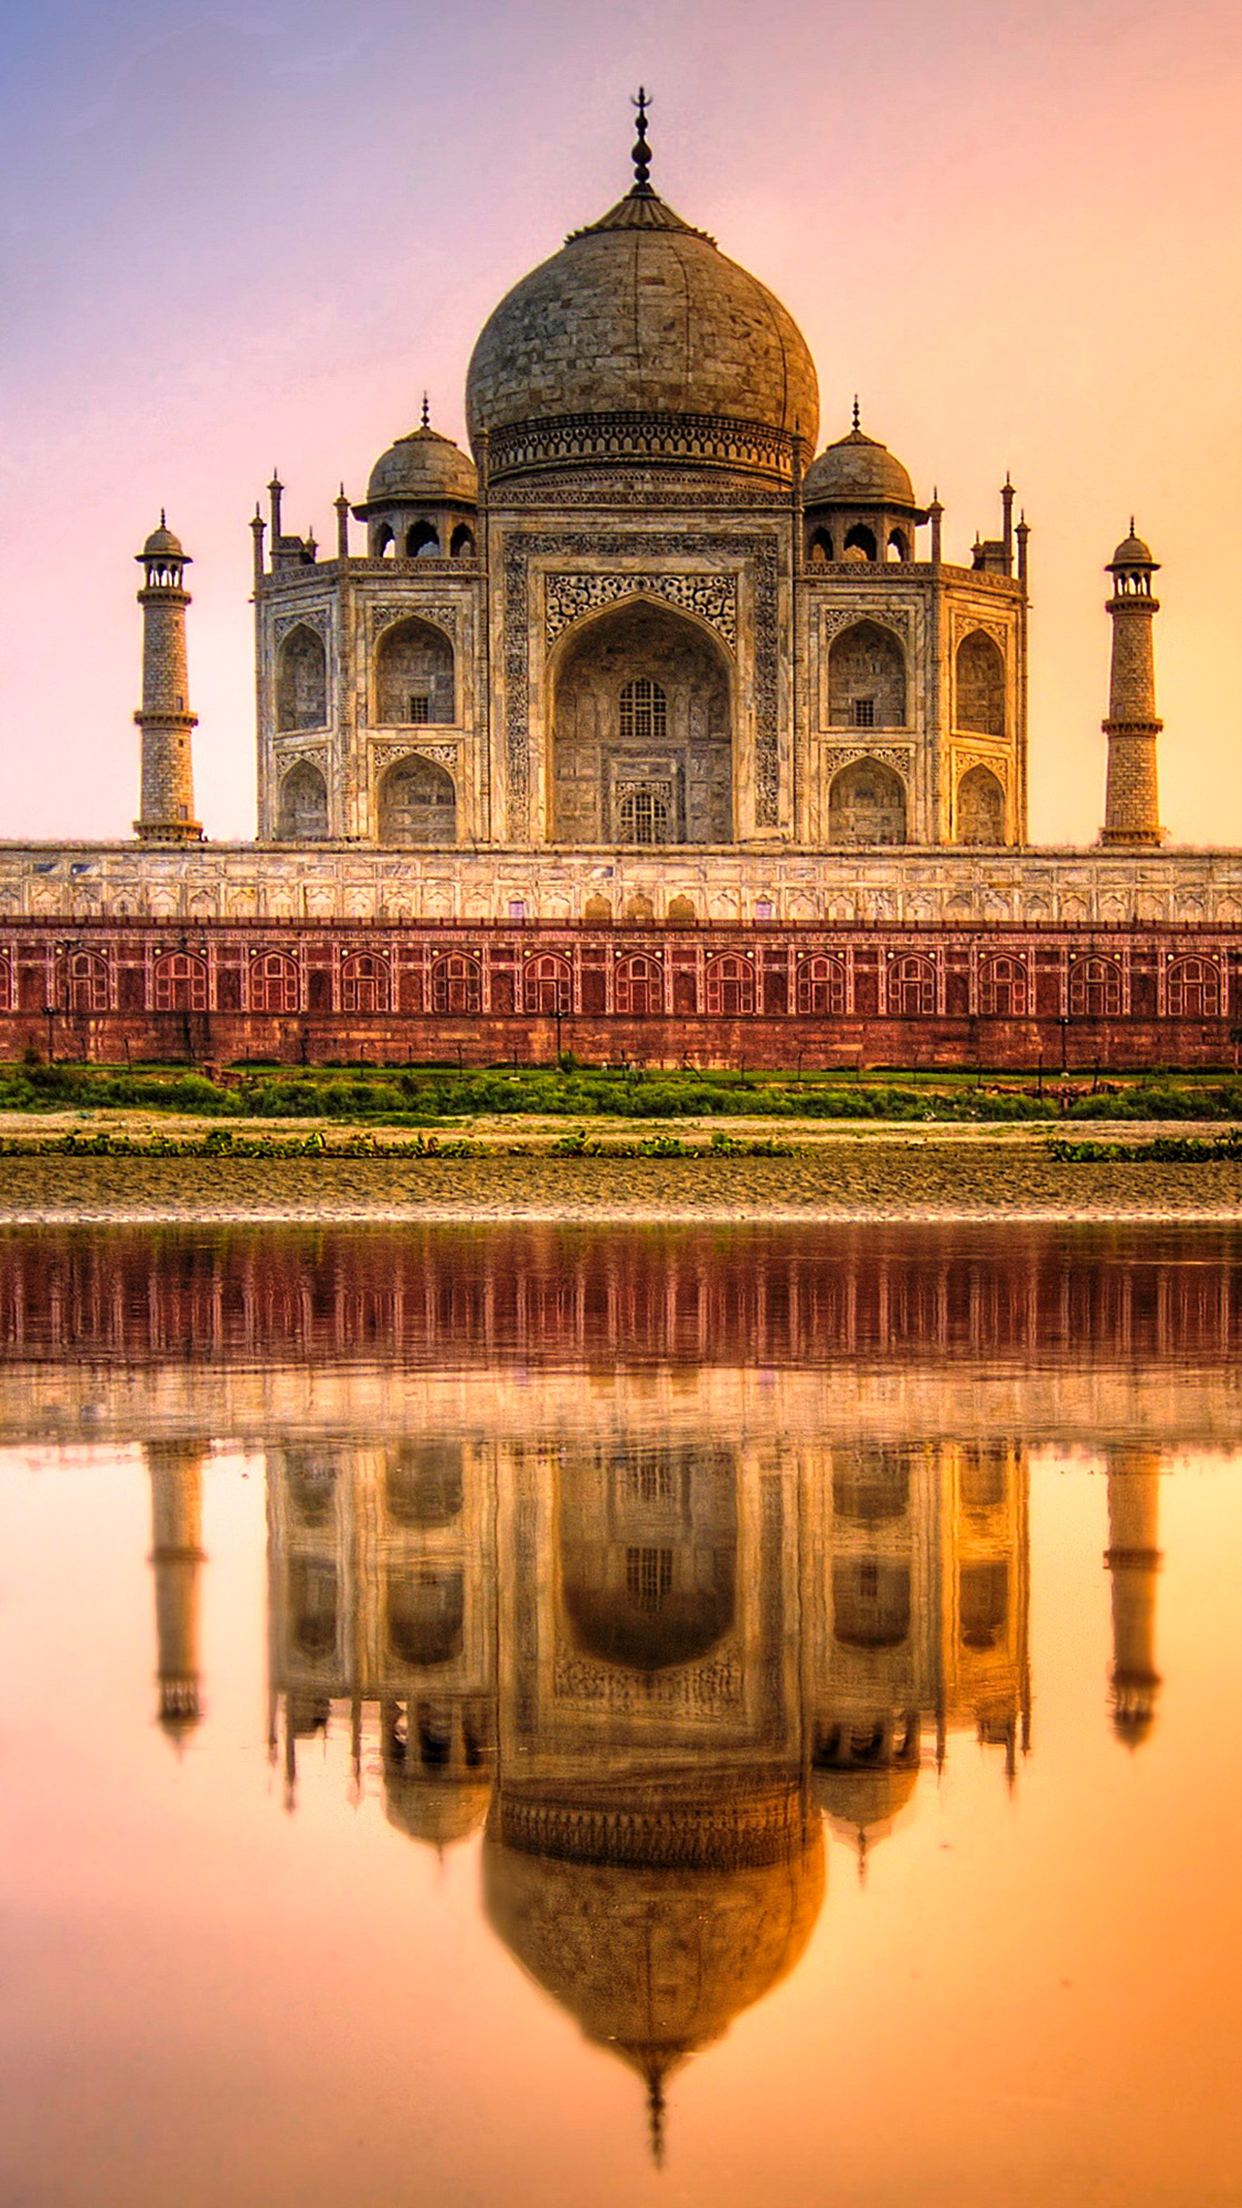 India taj mahal iPhone 3Wallpapers Parallax Les 3 Wallpapers iPhone du jour (18/06/2015)